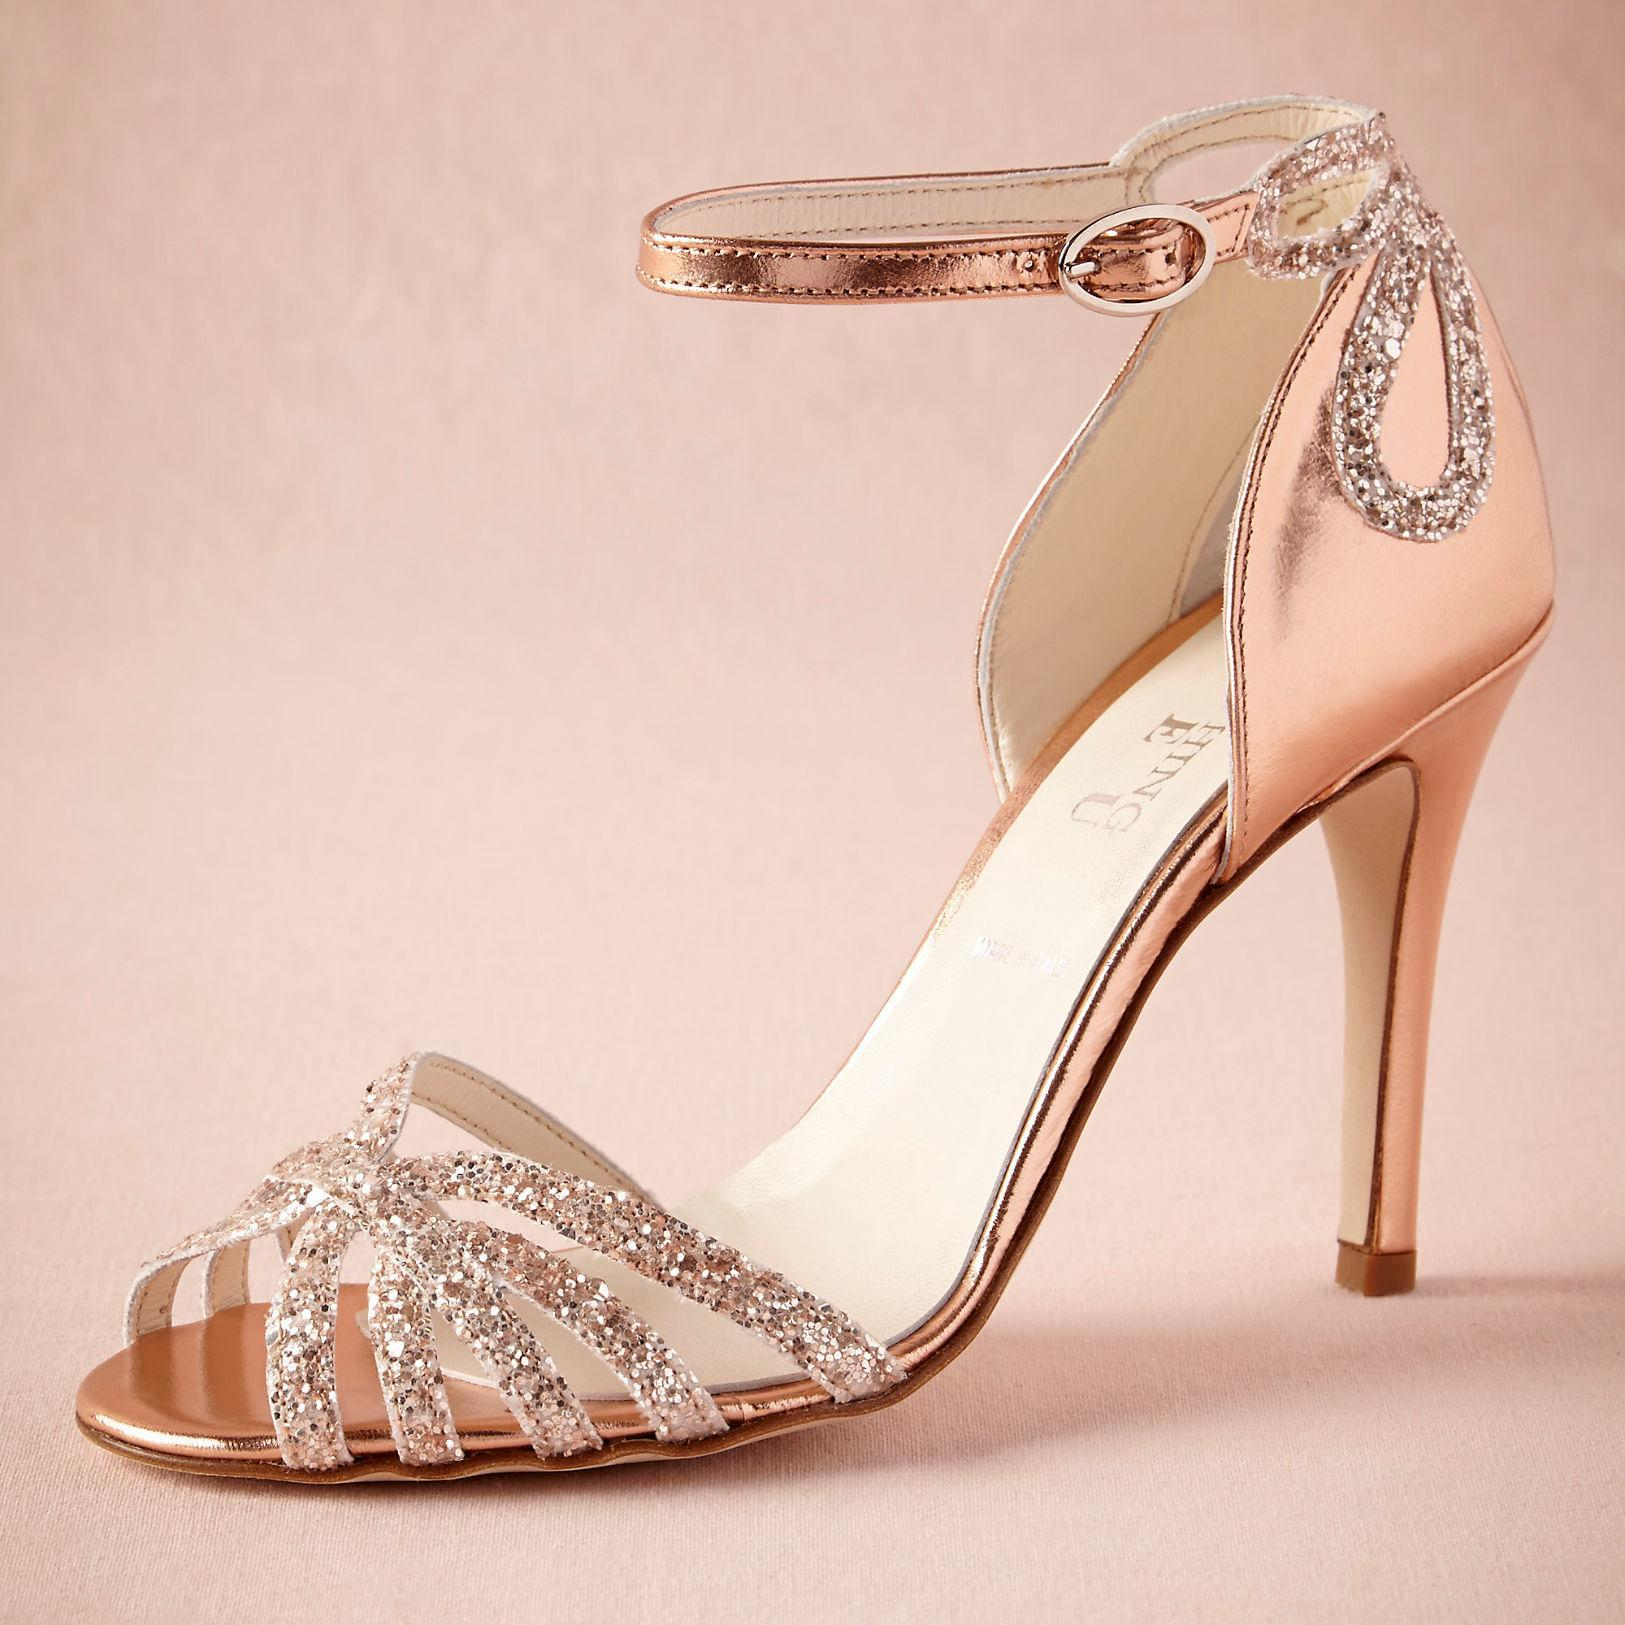 Silver Glittery High Heel Open Toe Party Shoes rMJoe